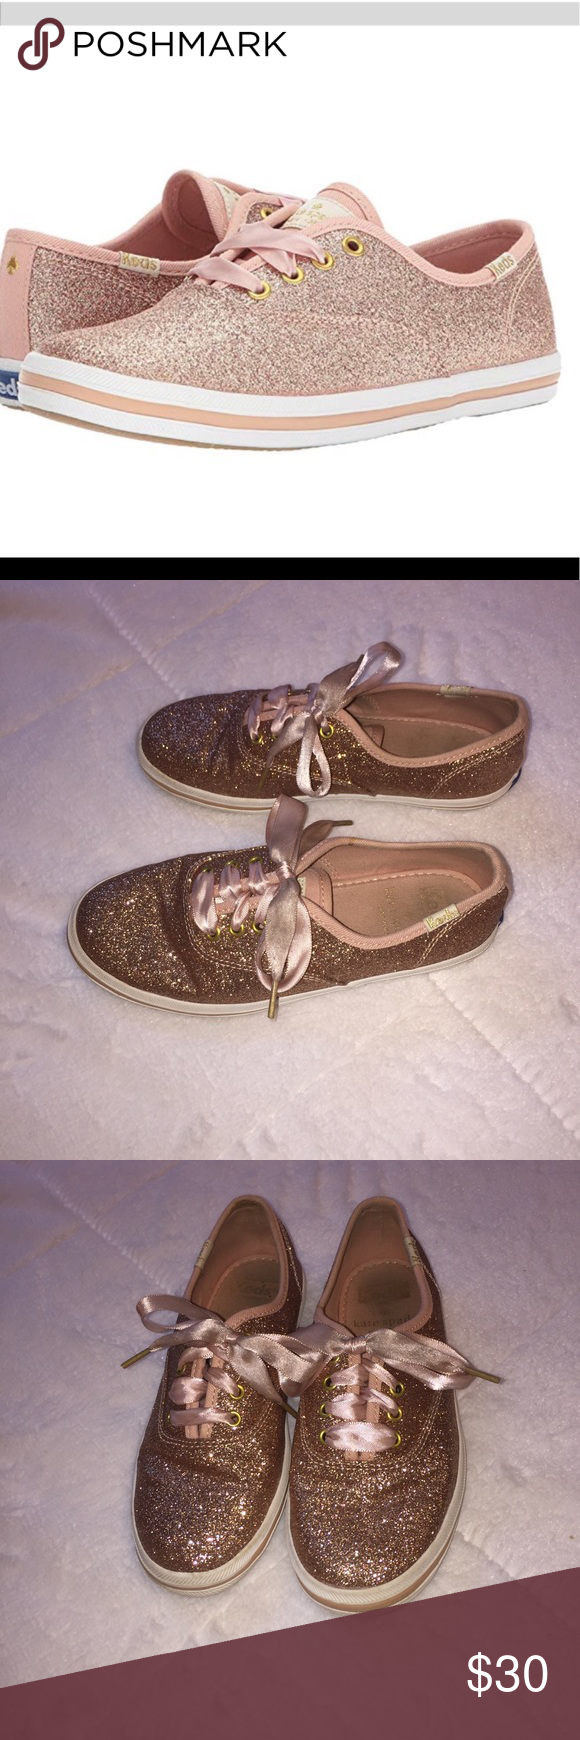 51bcdd8b4829 Keds x Kate Spade Rose Gold Glitter Sneakers 13.5 Kids Kate Spade Keds.  Pink rose gold color. Sparkles and glitter and pink laces. Very good used  condition ...